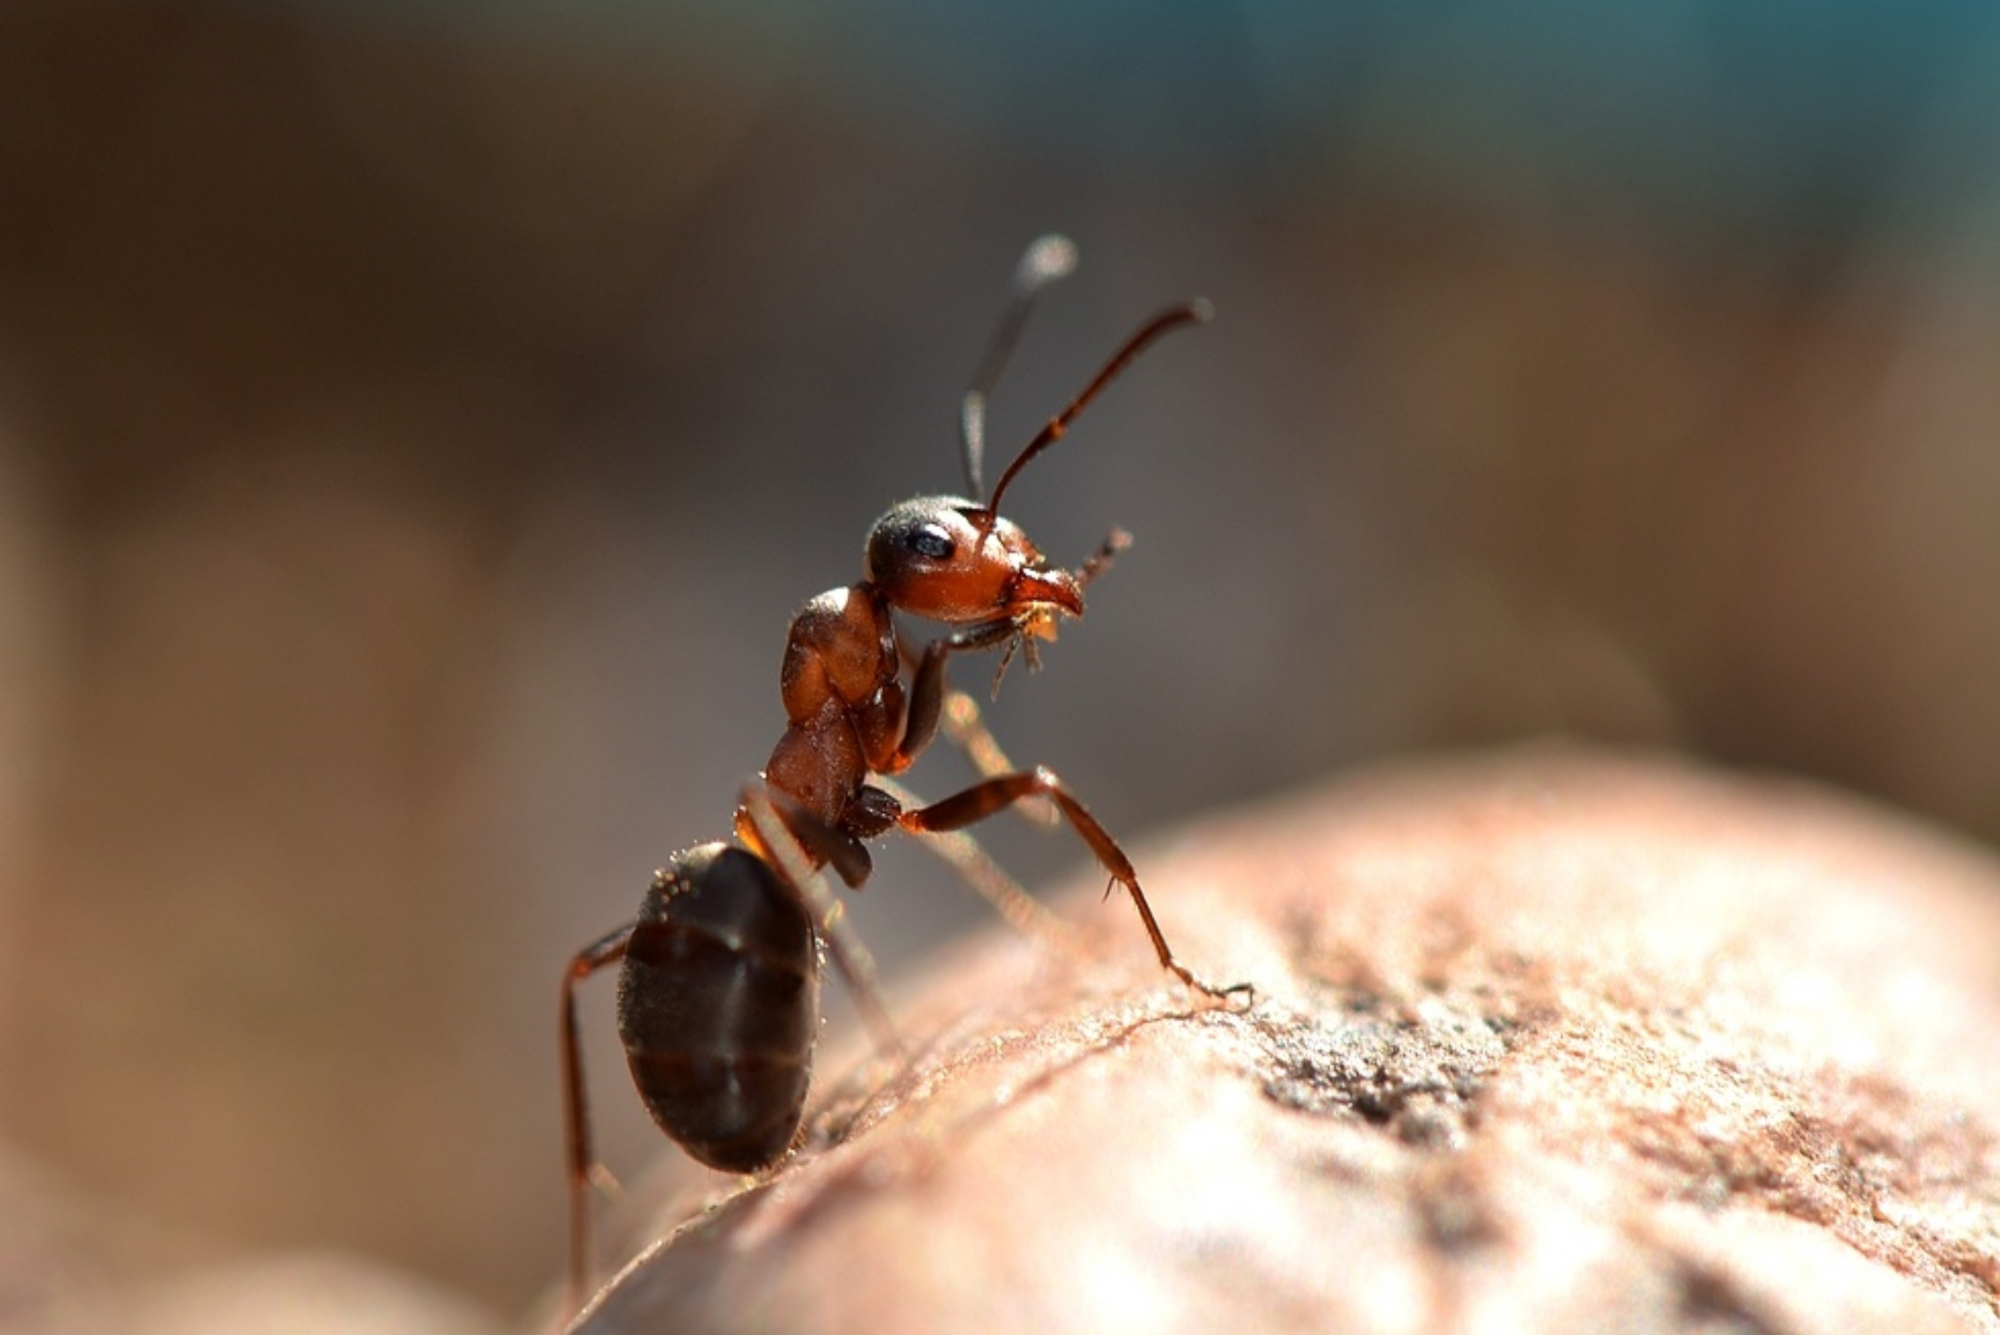 An Ant Eating